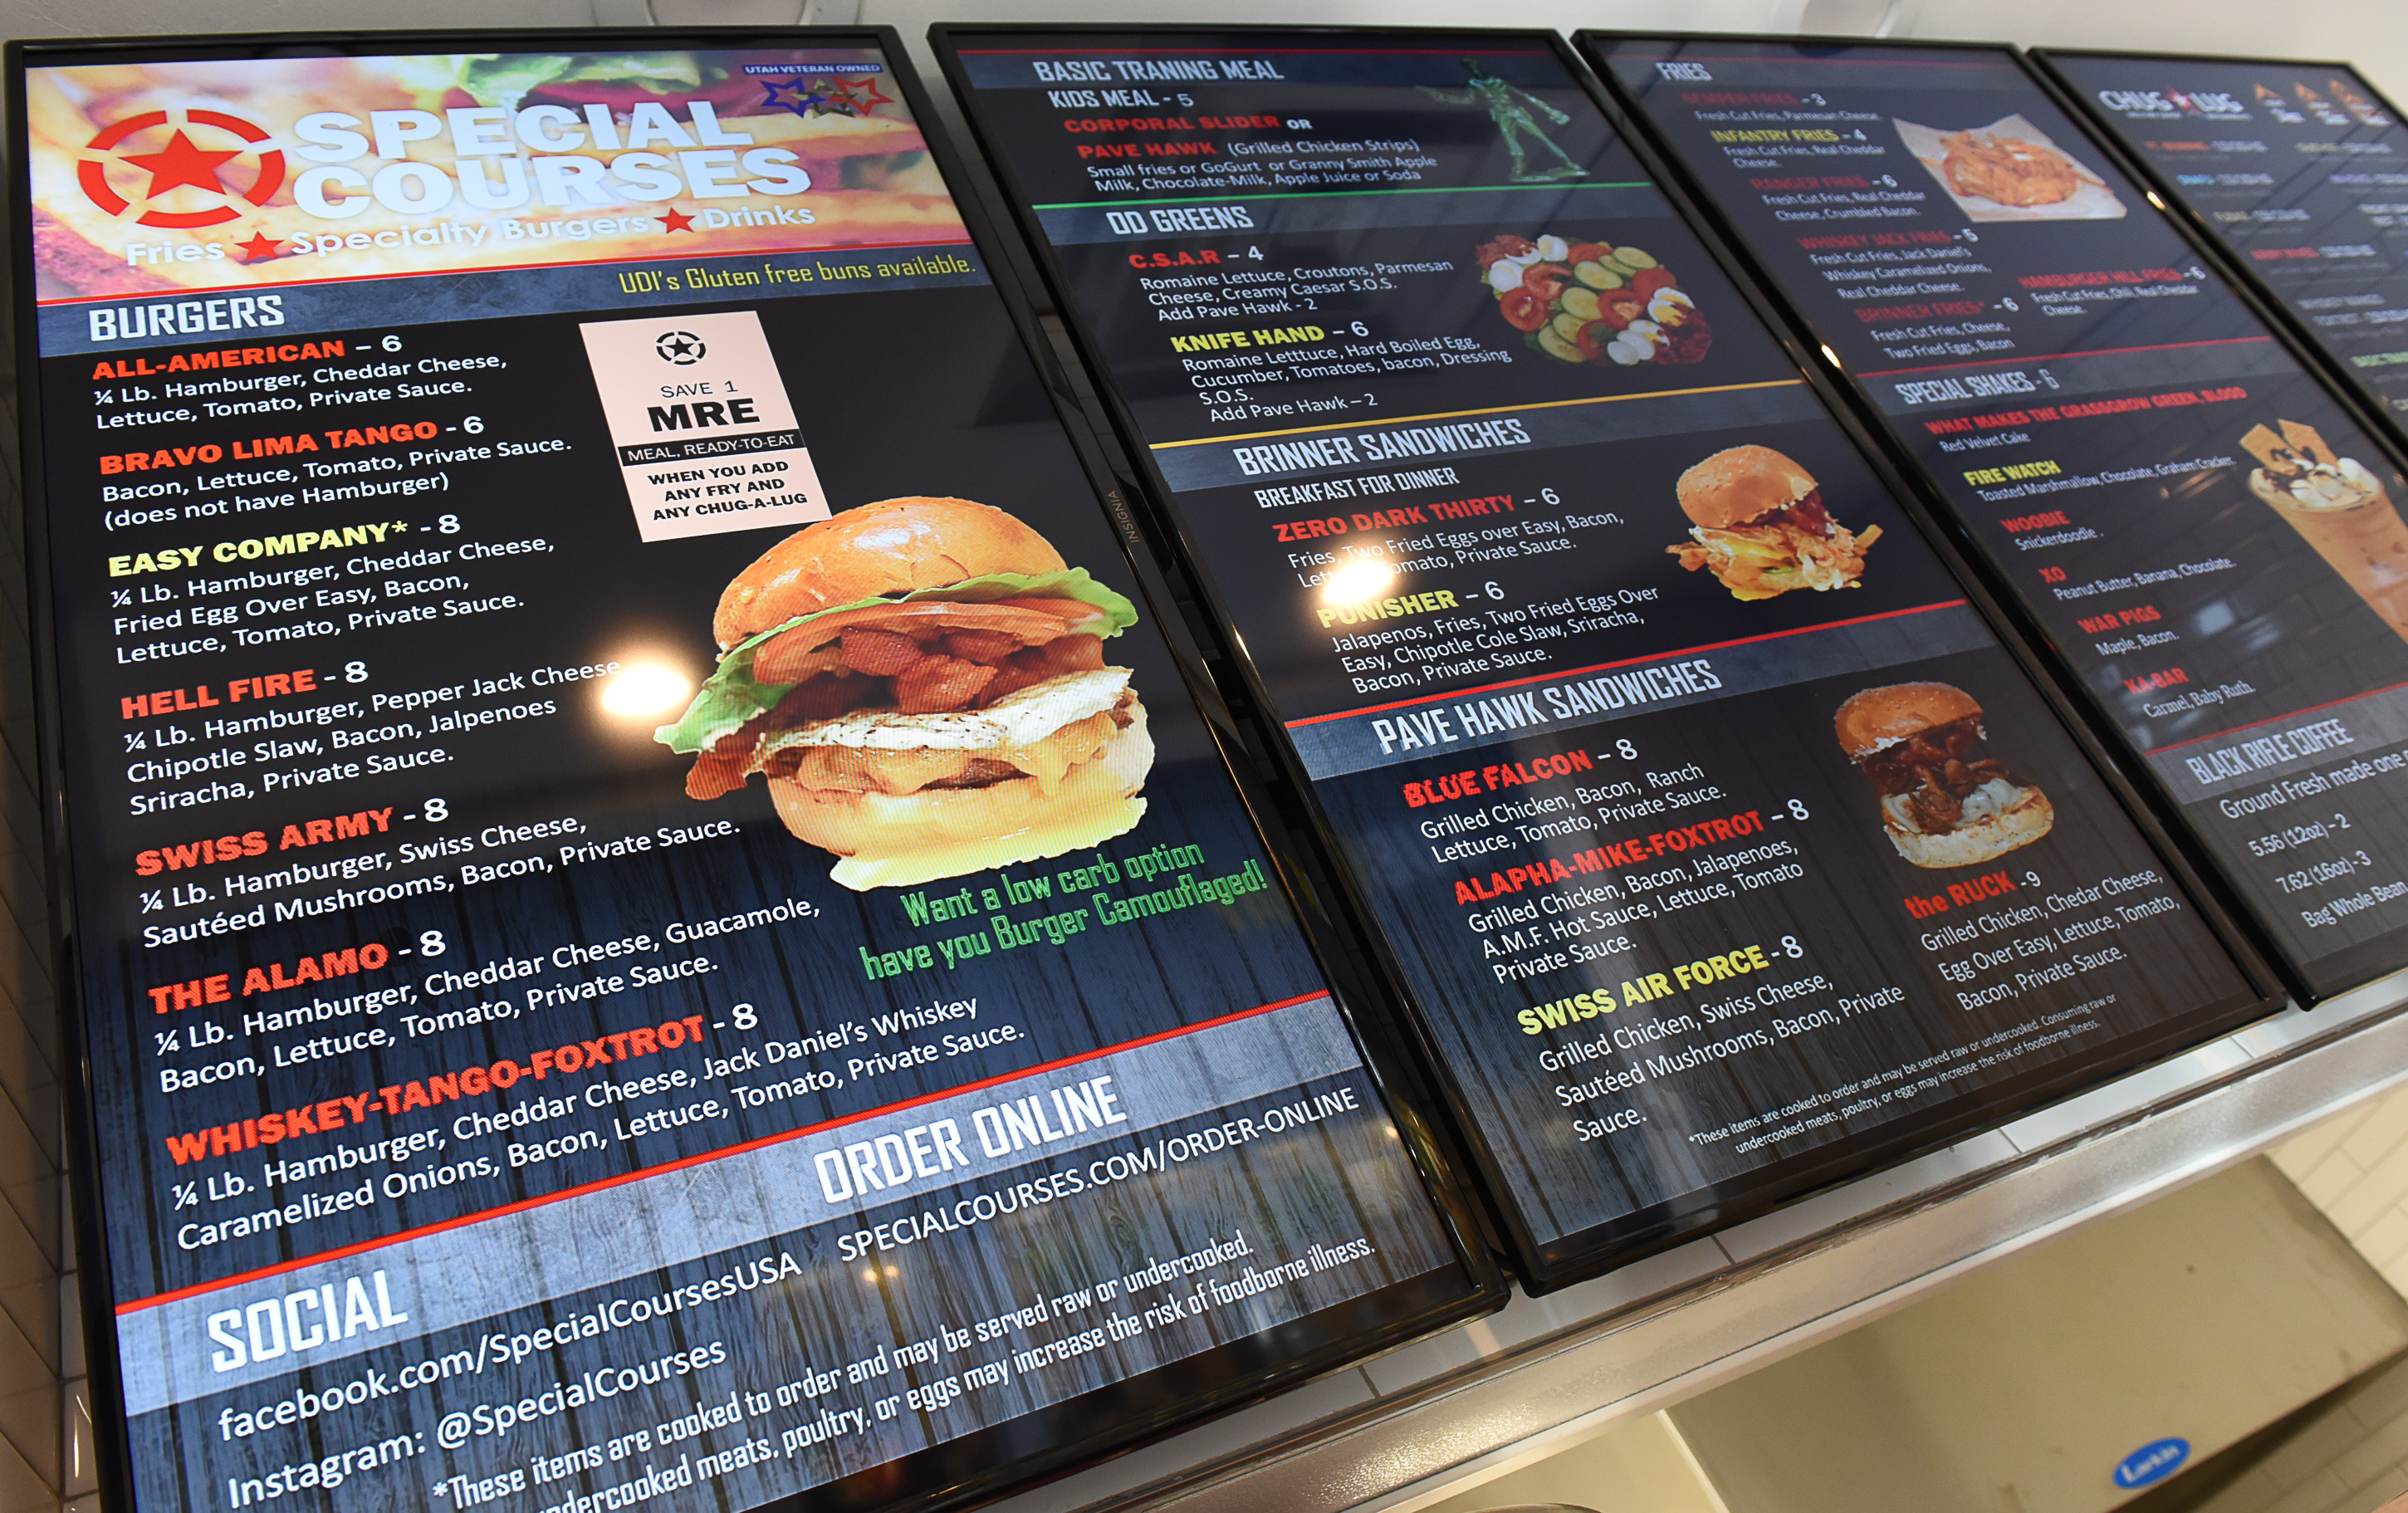 New places to eat in Utah a military veteran s burger joint in